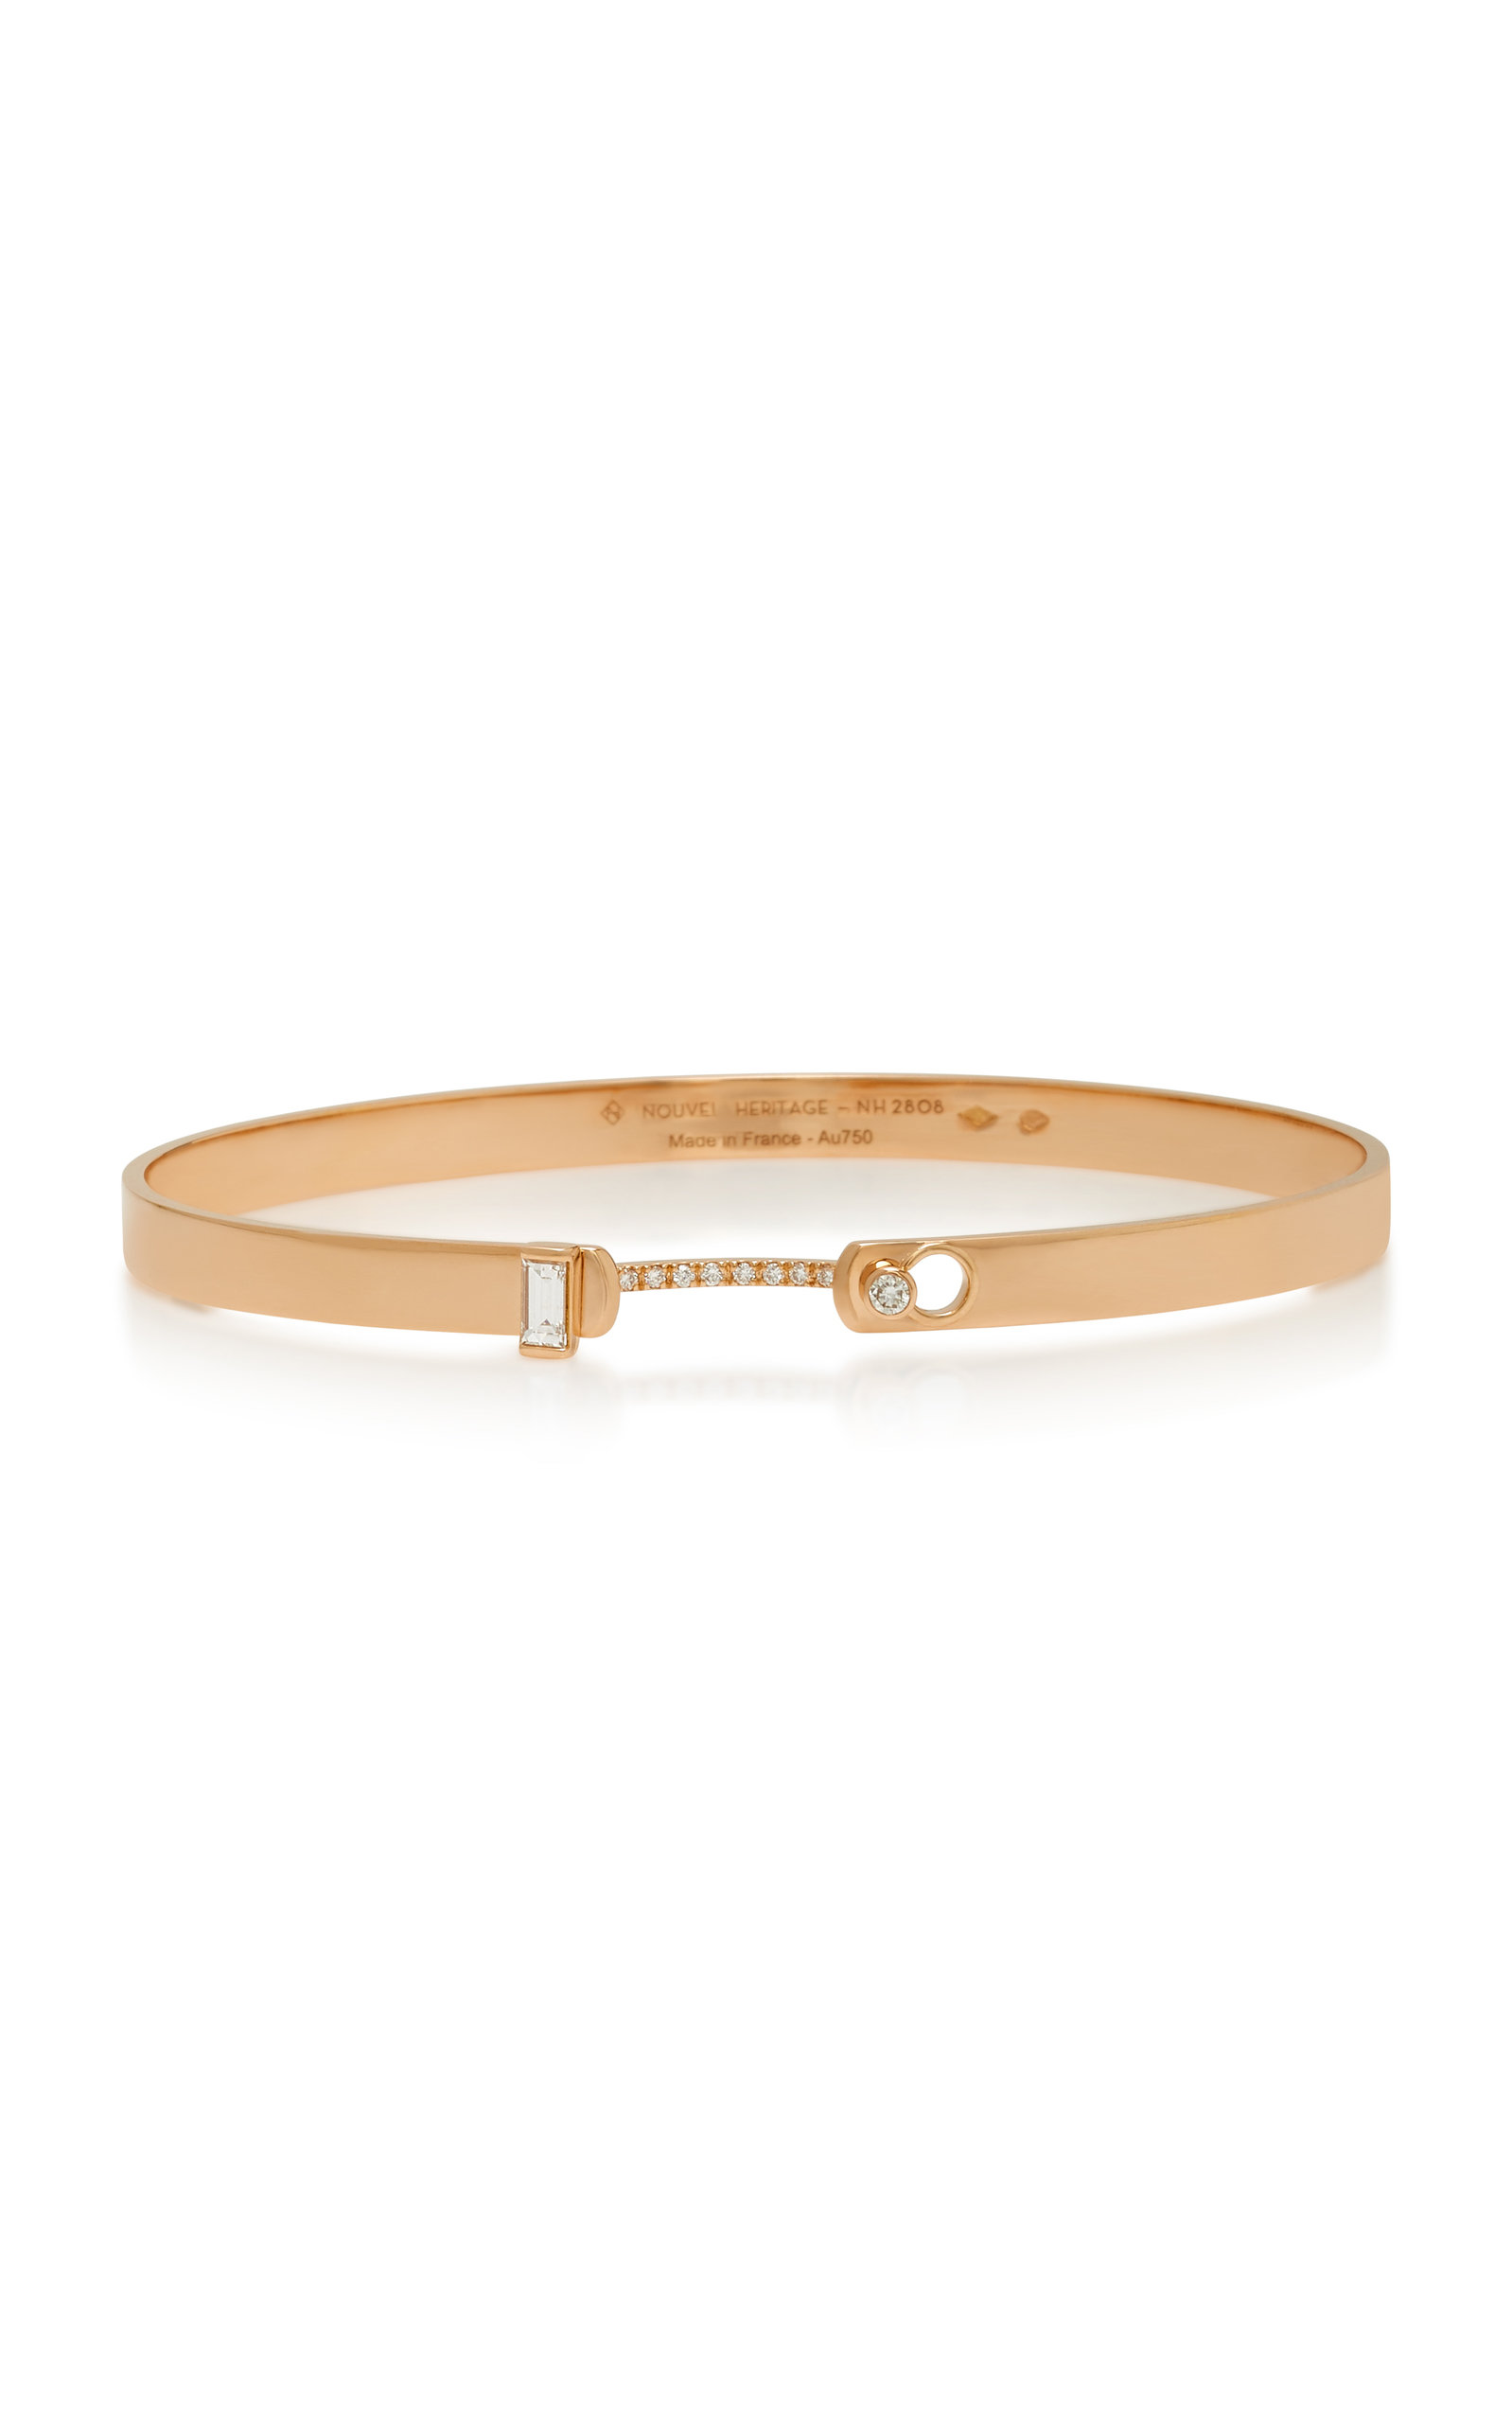 NOUVEL HERITAGE DINNER DATE 18K ROSE GOLD DIAMOND BANGLE